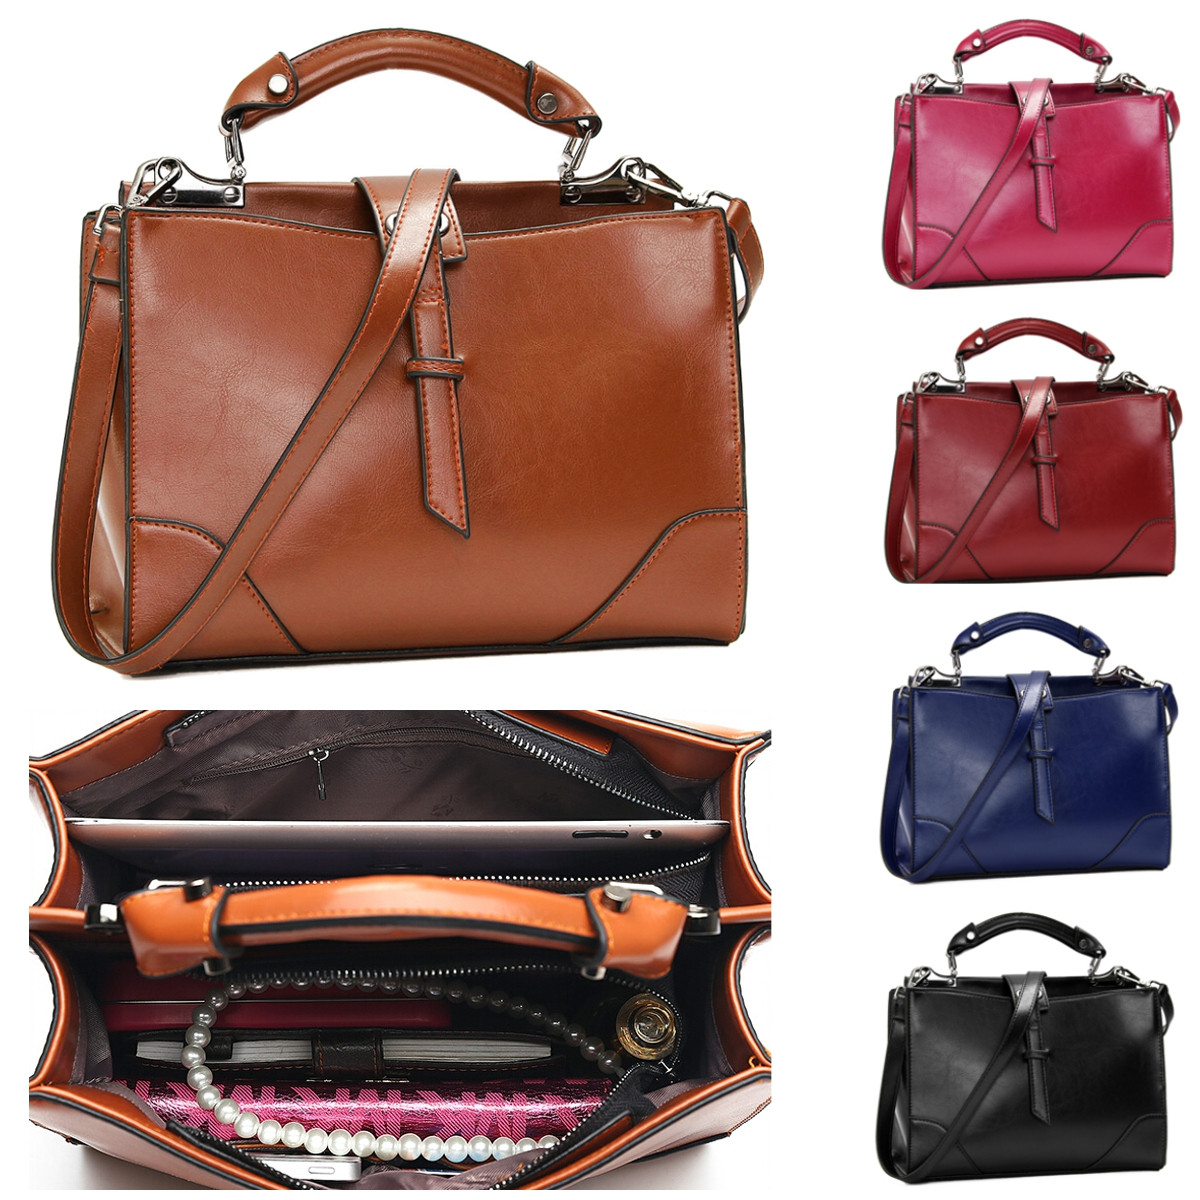 Women Fashion Purses and Handbags Large PU Leather Messenger Shoulder Bag Cross Body